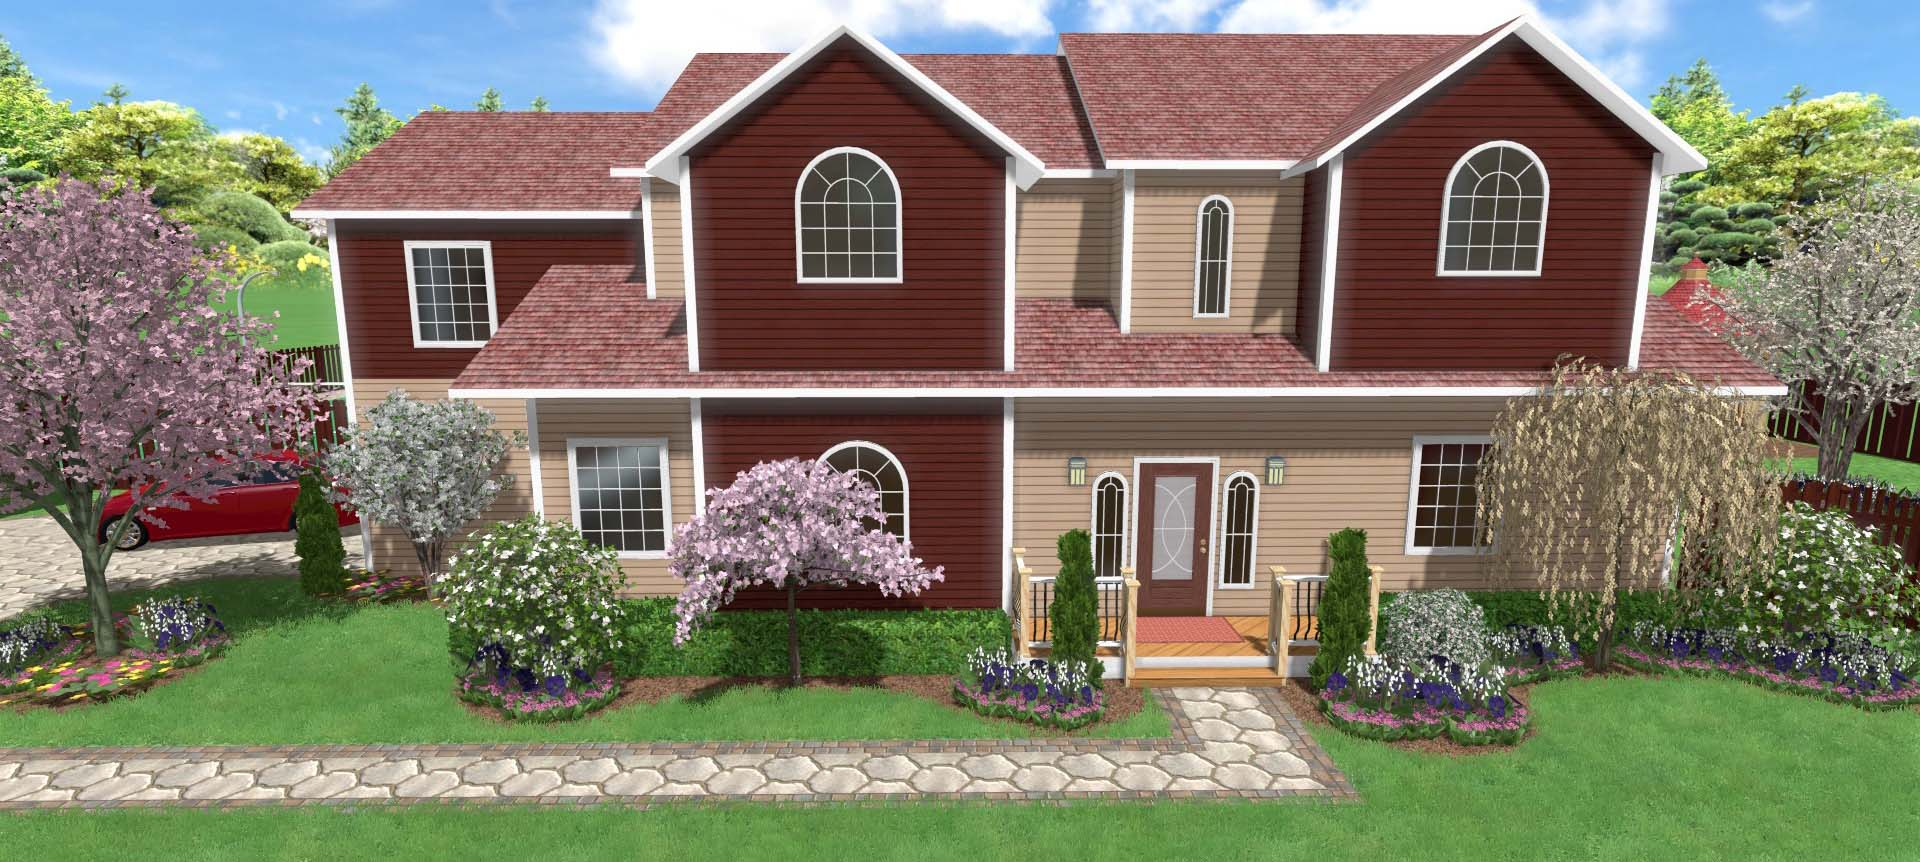 Home landscaping software for House landscape